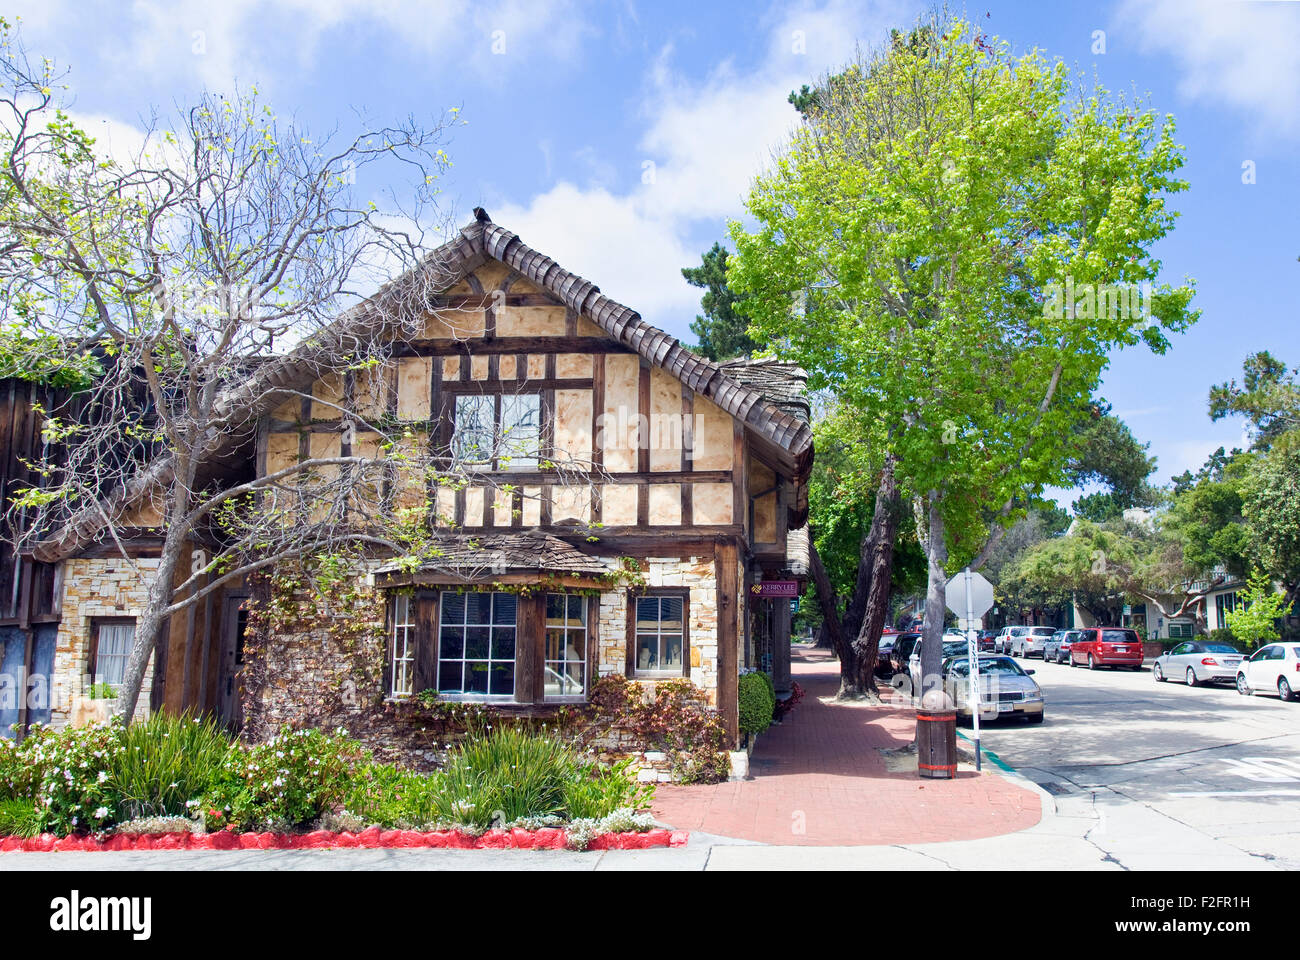 Kerry Lee Remarkable Jewelry shop in Carmel, California - Stock Image